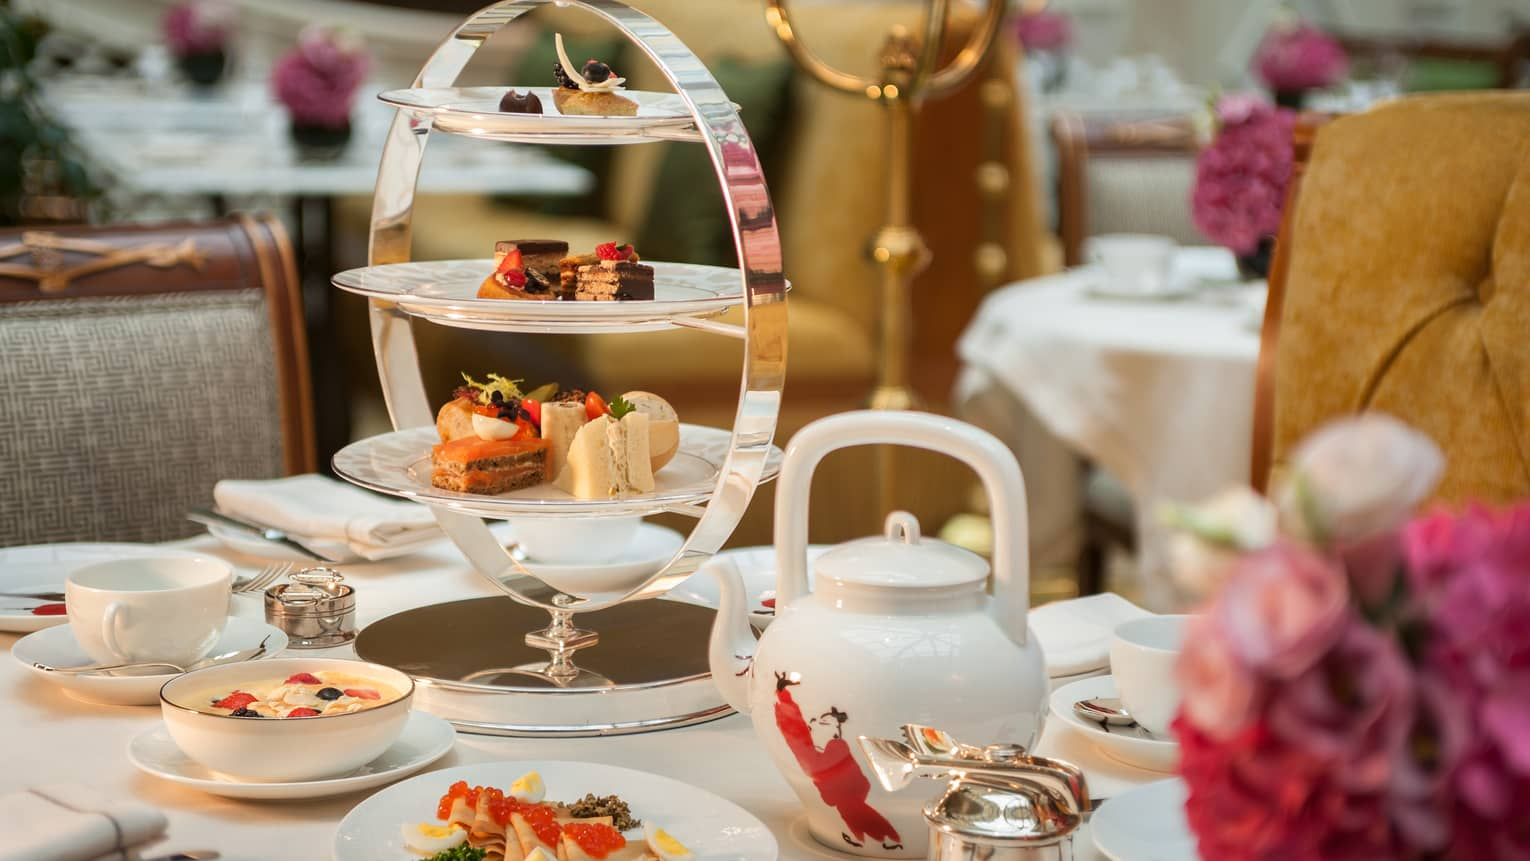 Elegant tea service on dining table, white pout, three-tiered tray with little cakes, sandwiches